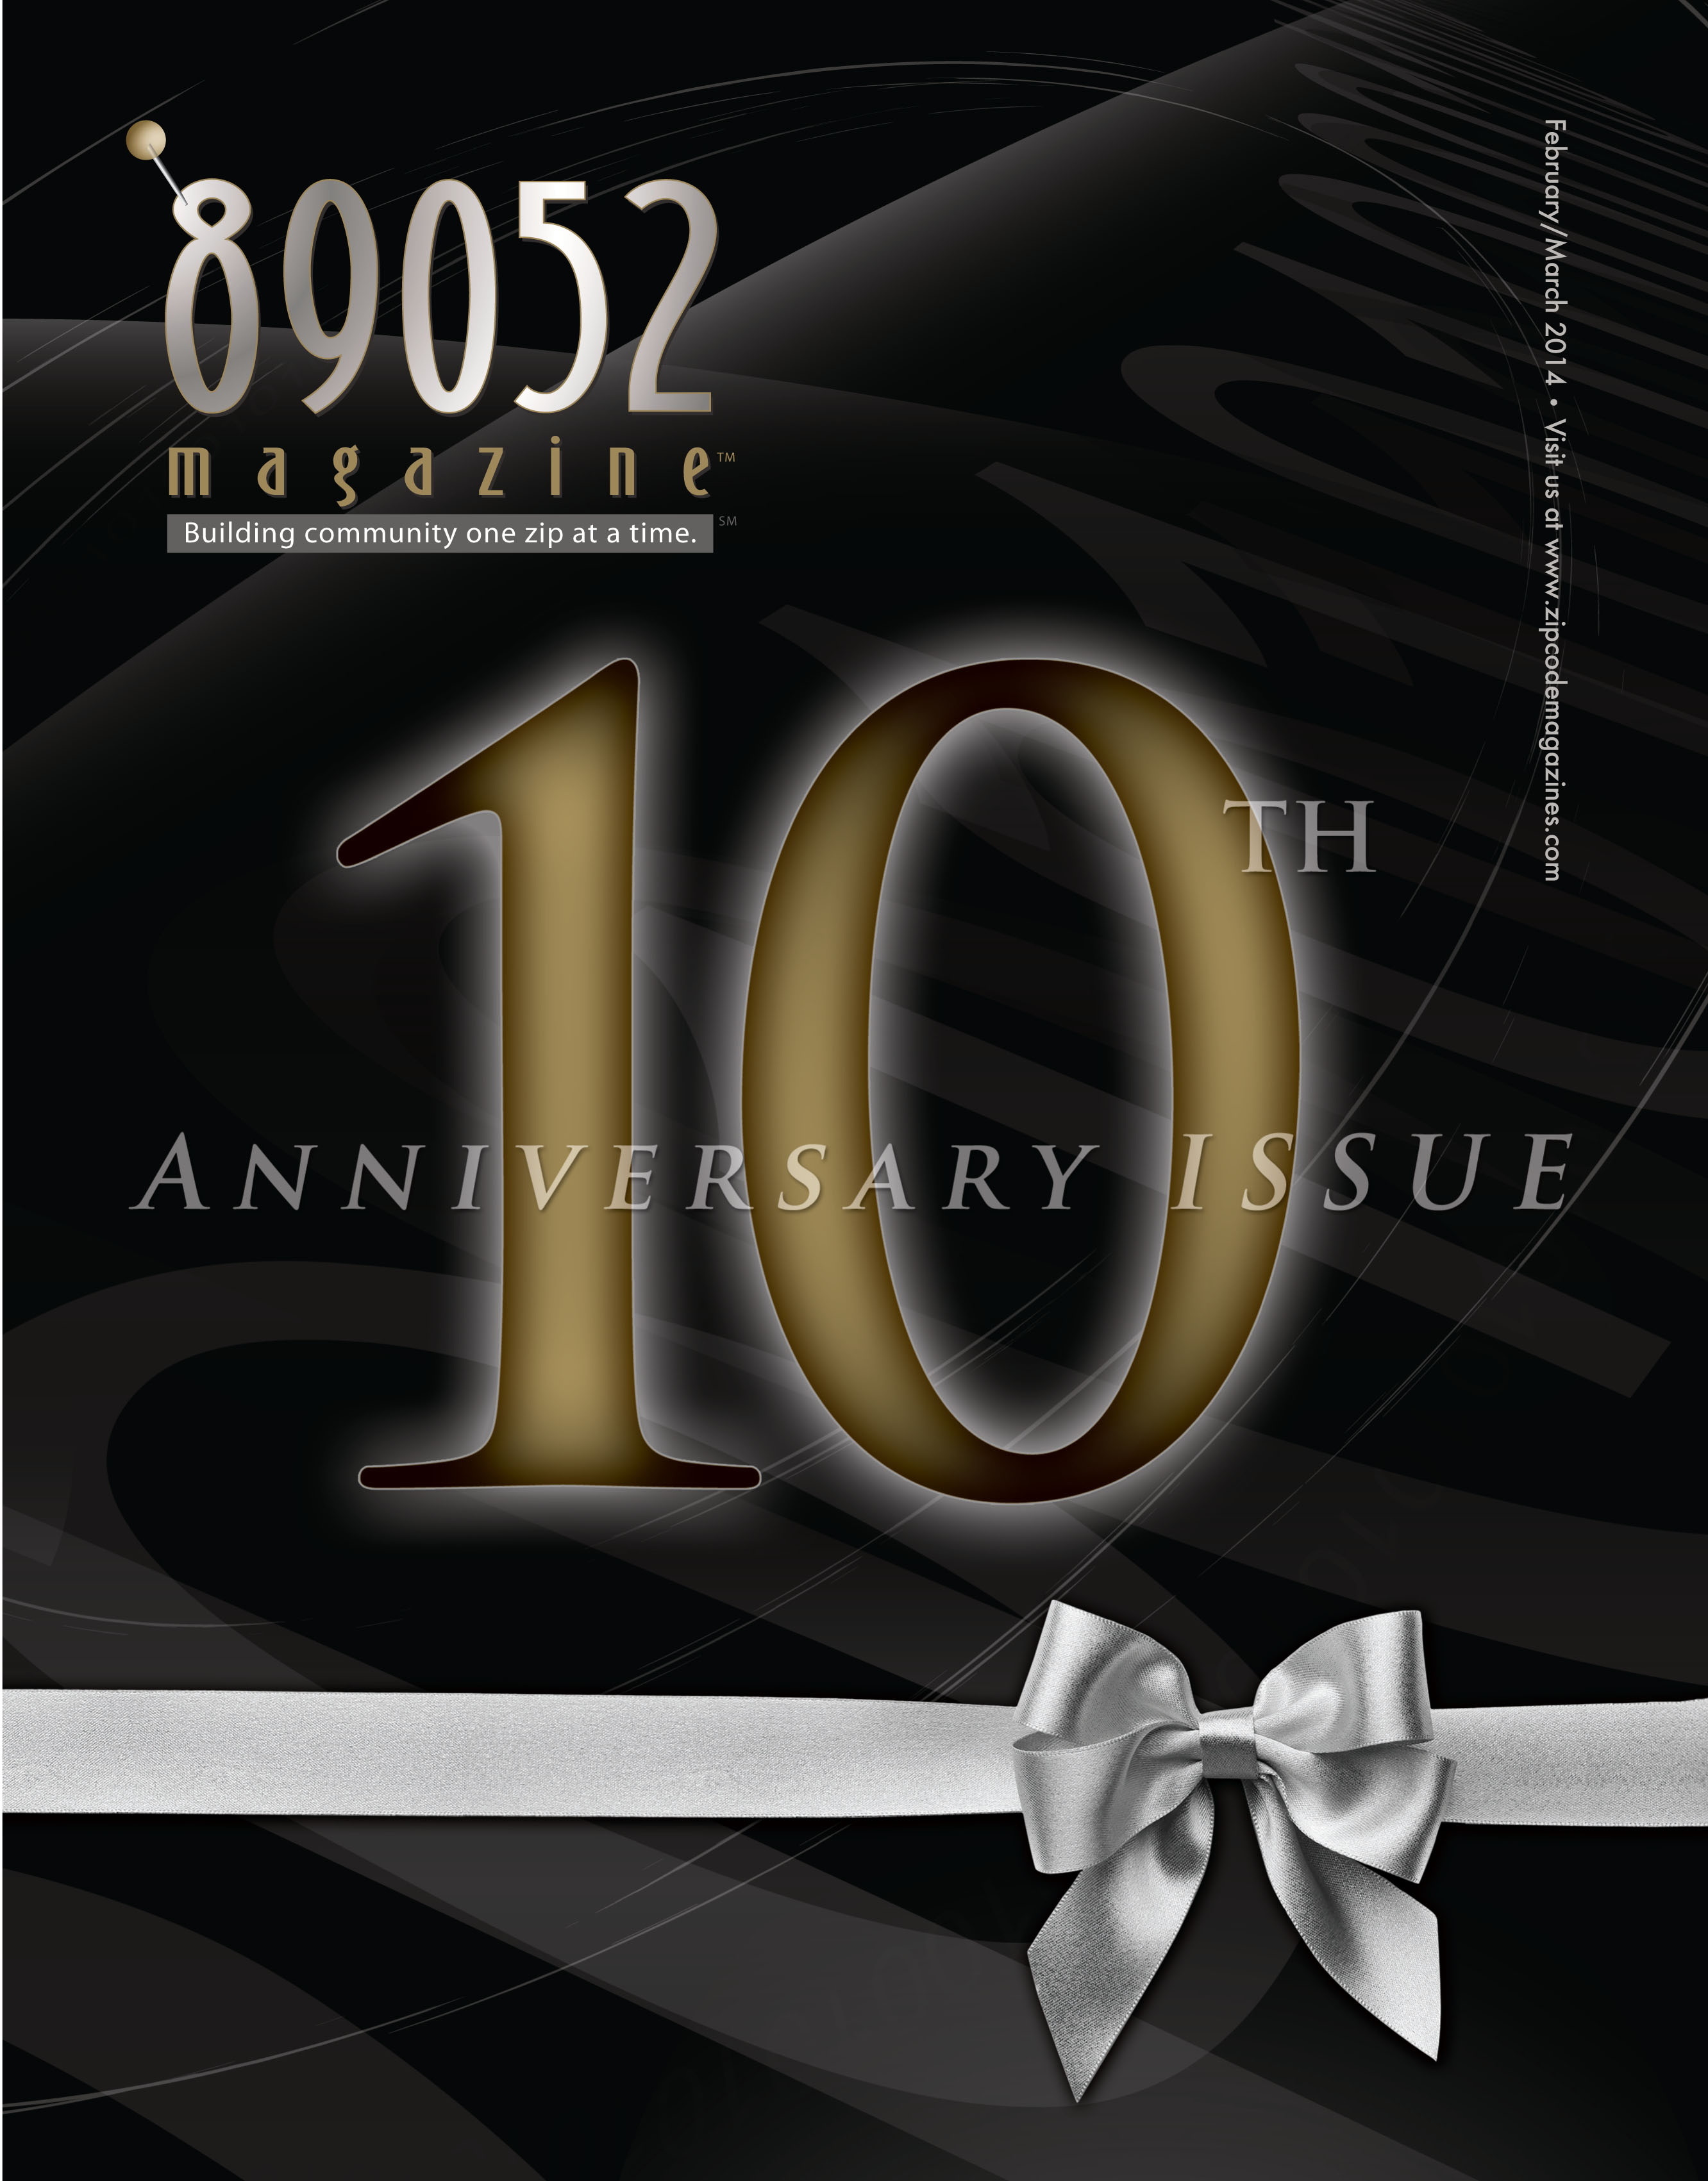 10 Years of Zip Code Magazines